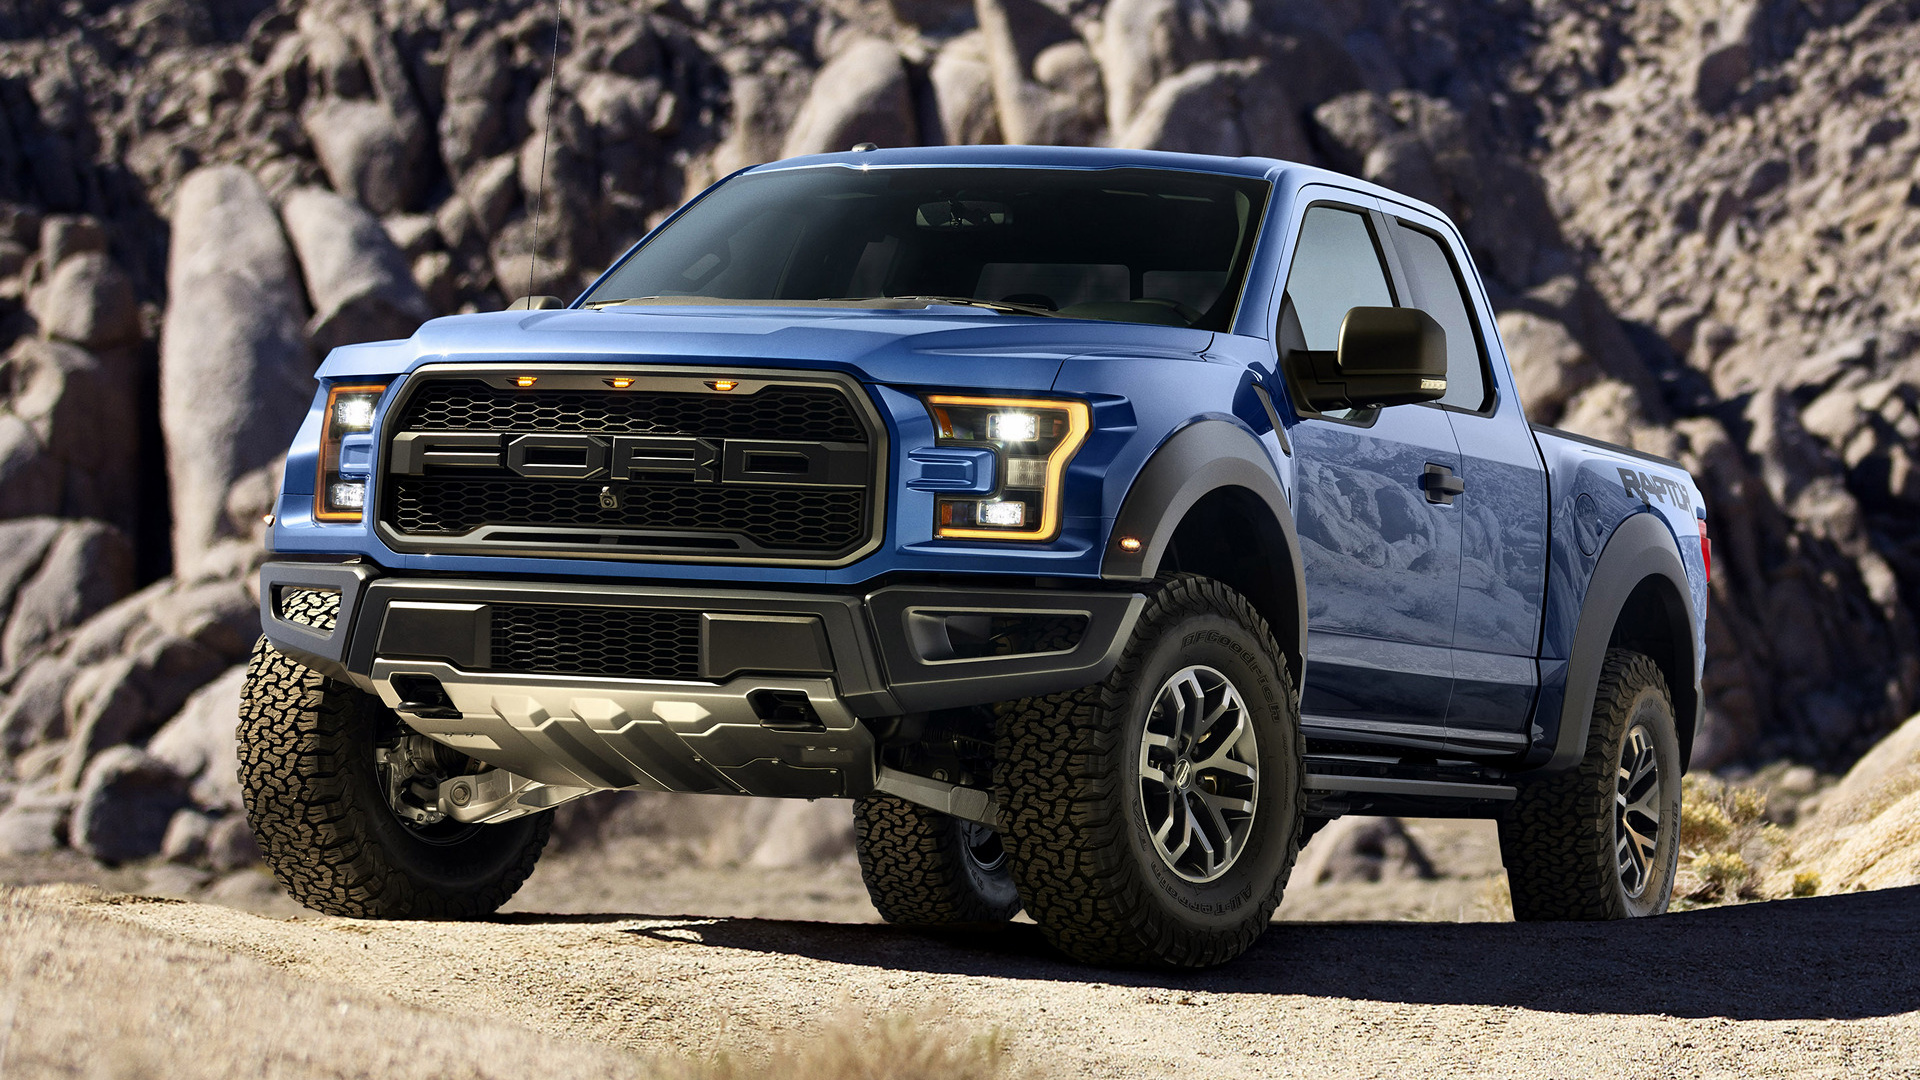 Ford f 150 raptor supercab 2017 wallpapers and hd images car pixel hd 169 voltagebd Choice Image